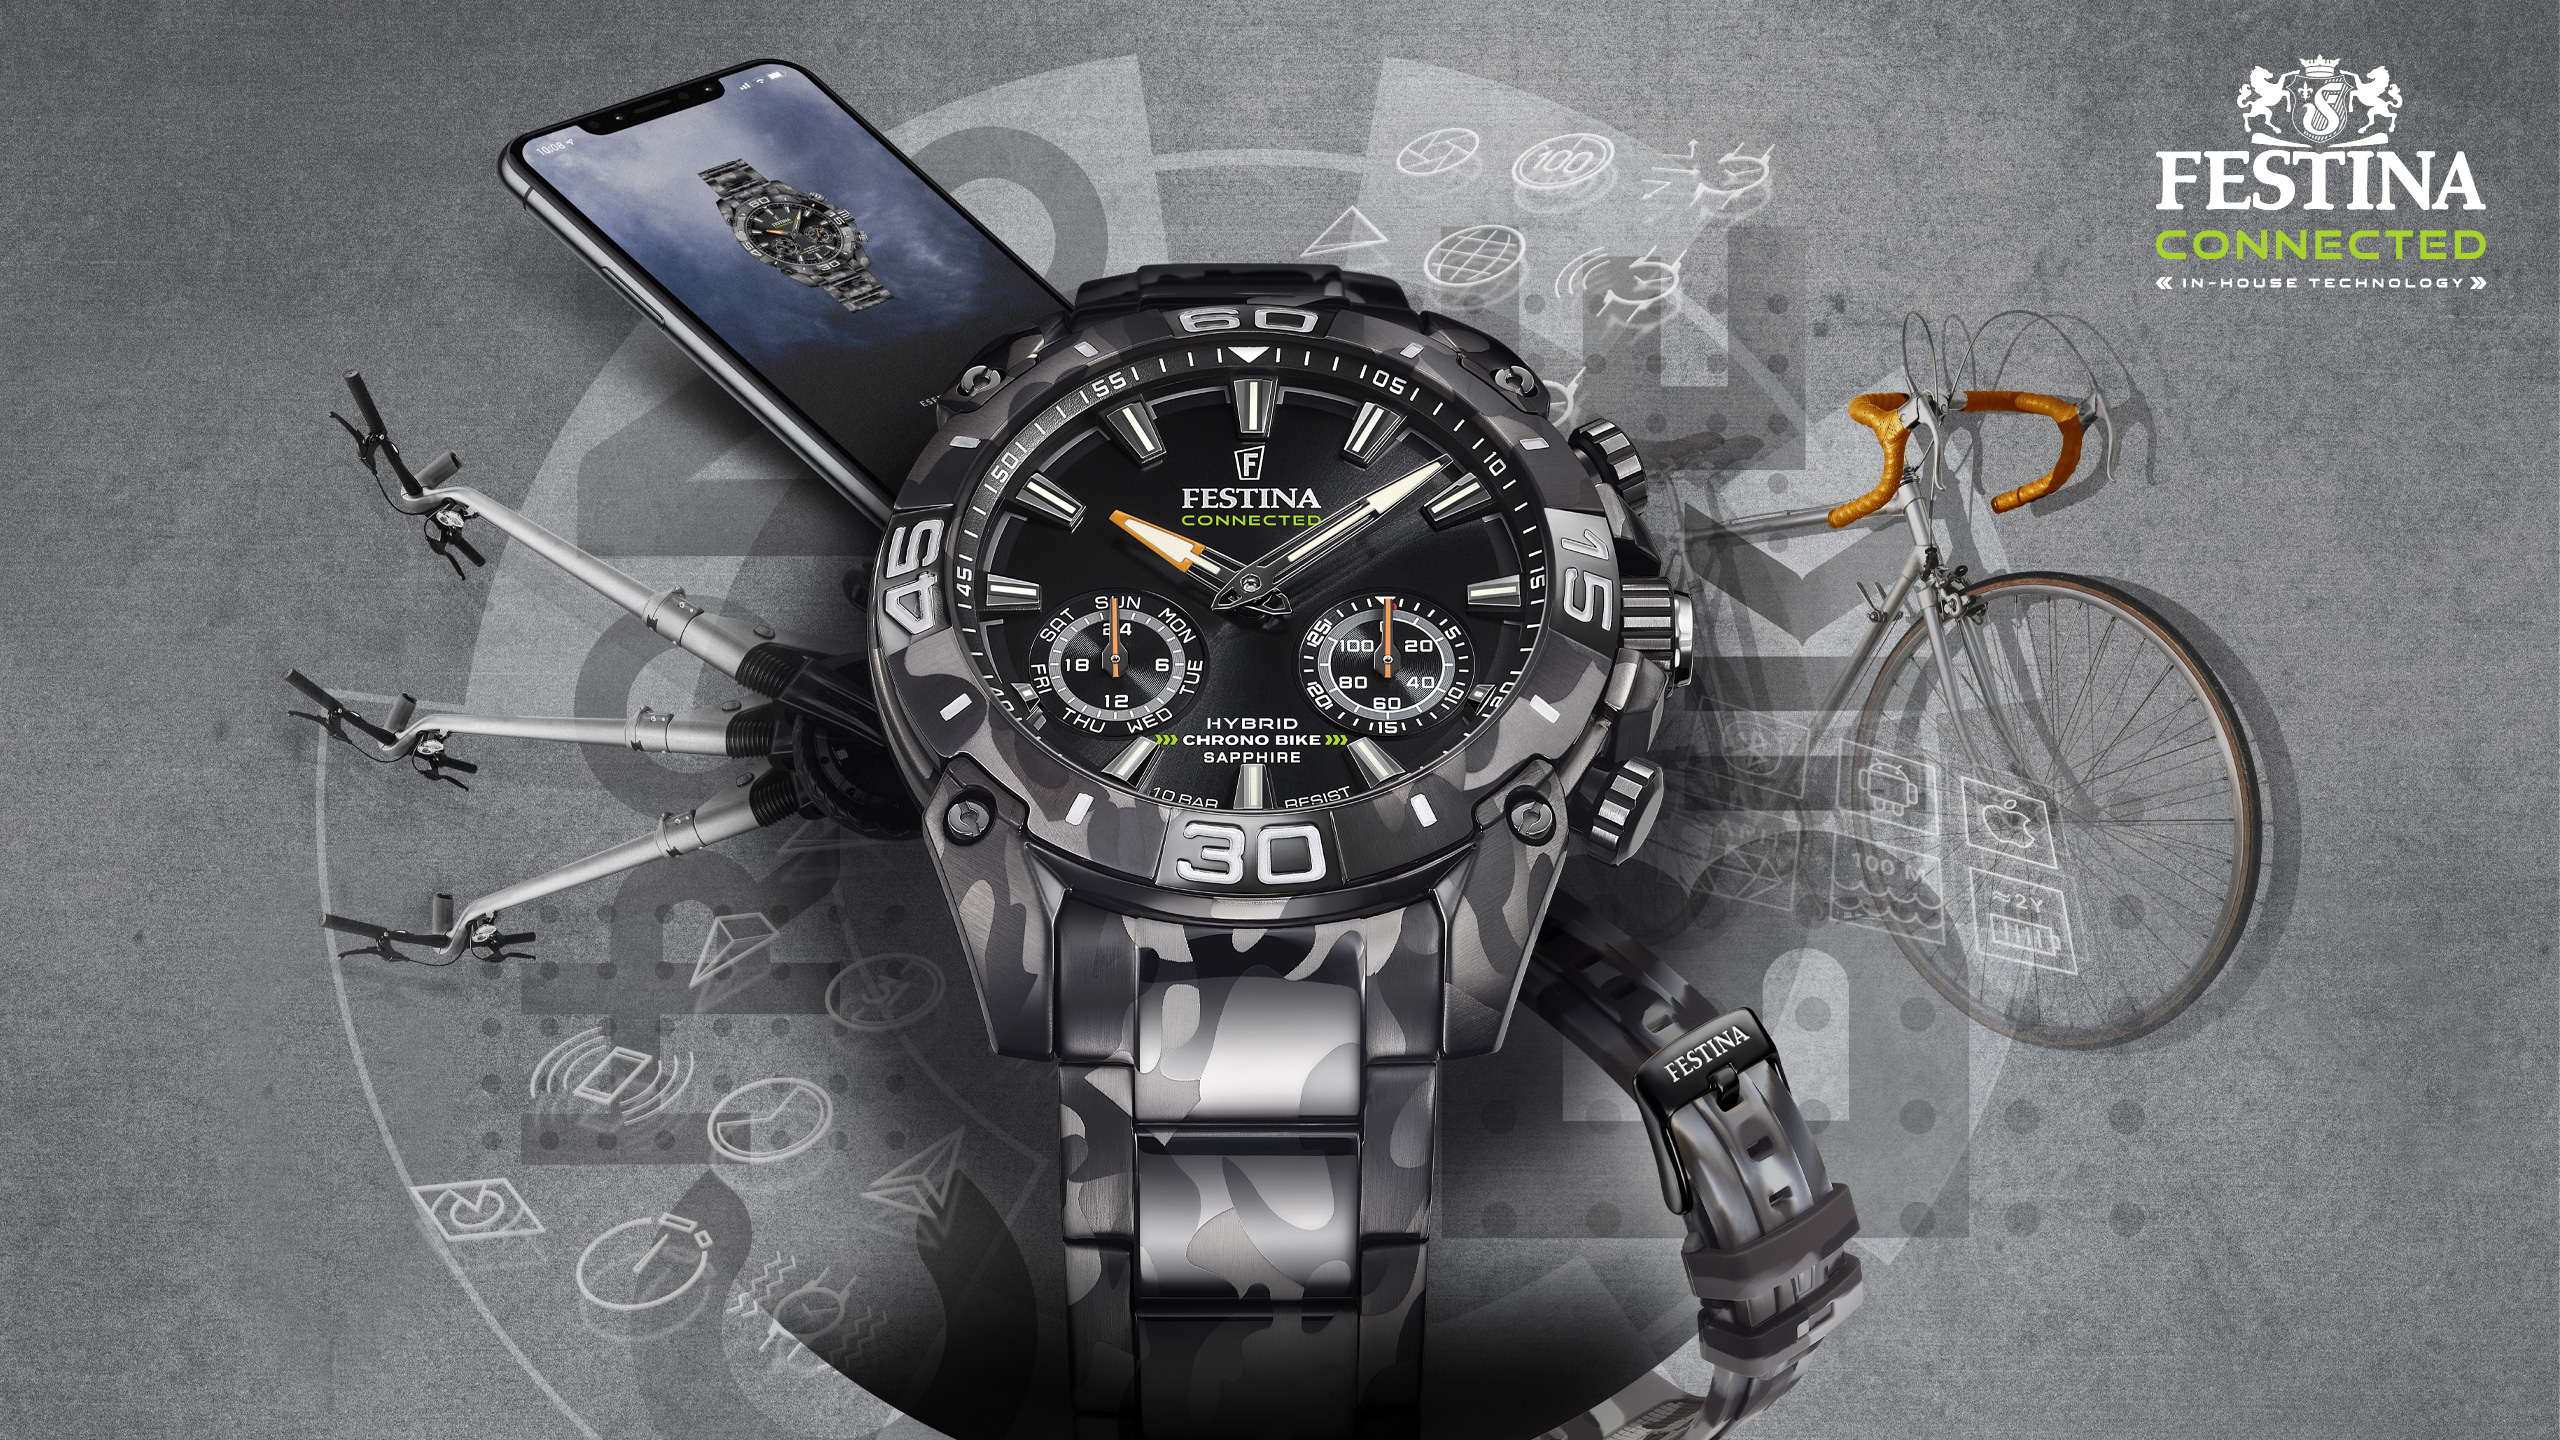 Festina Connected